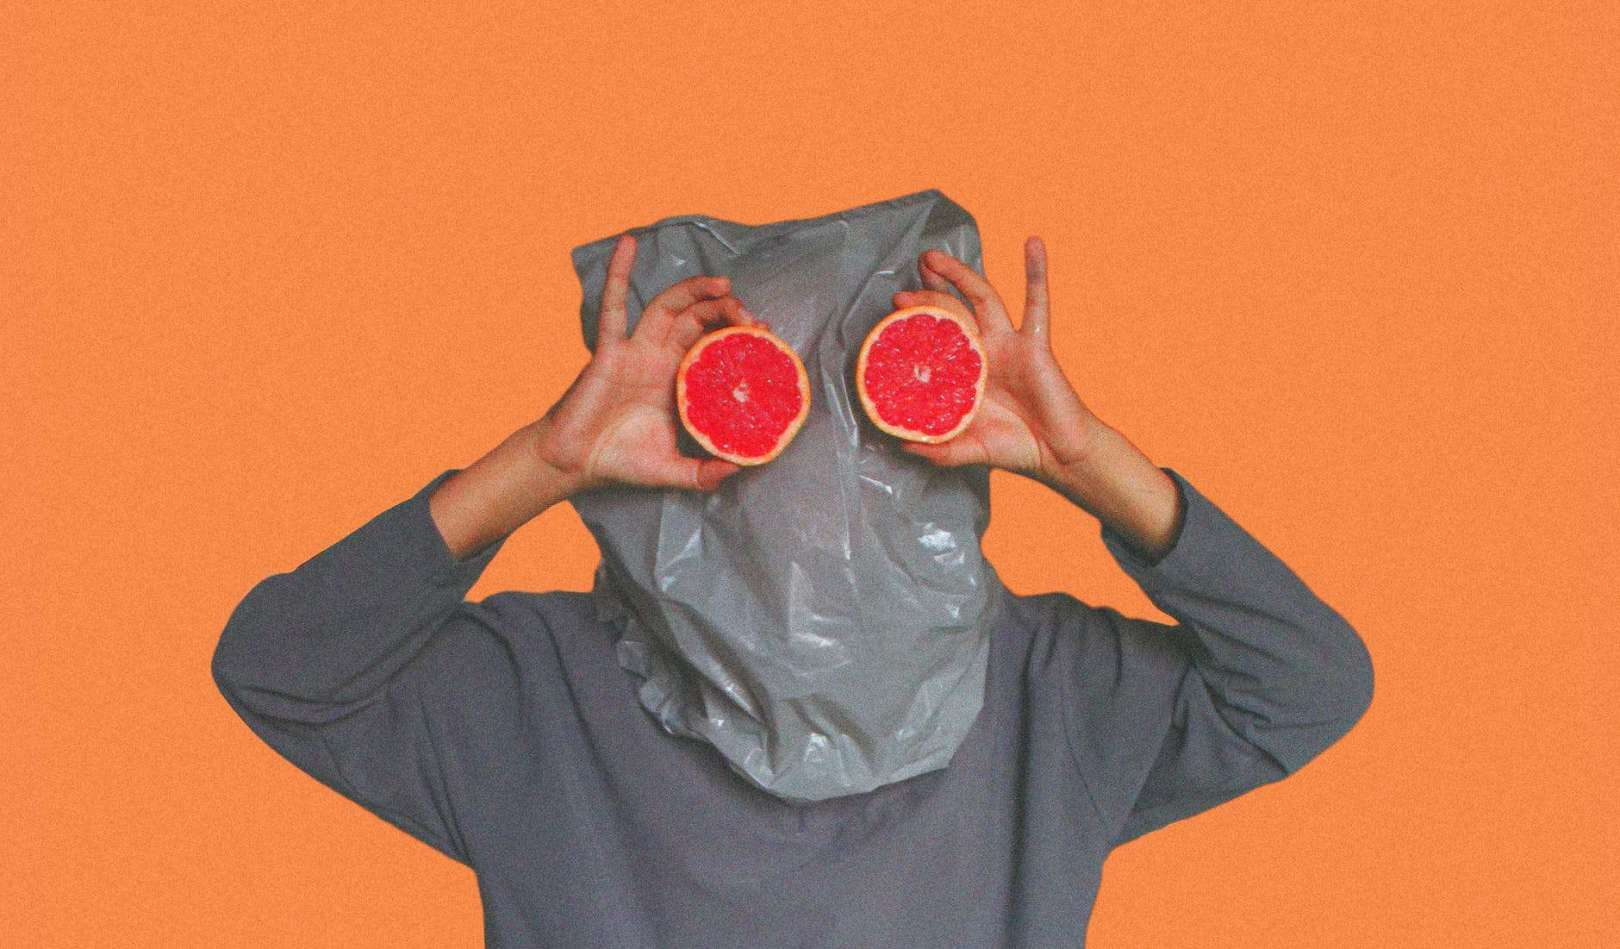 person covered with plastic bag on head while holding sliced blood orange